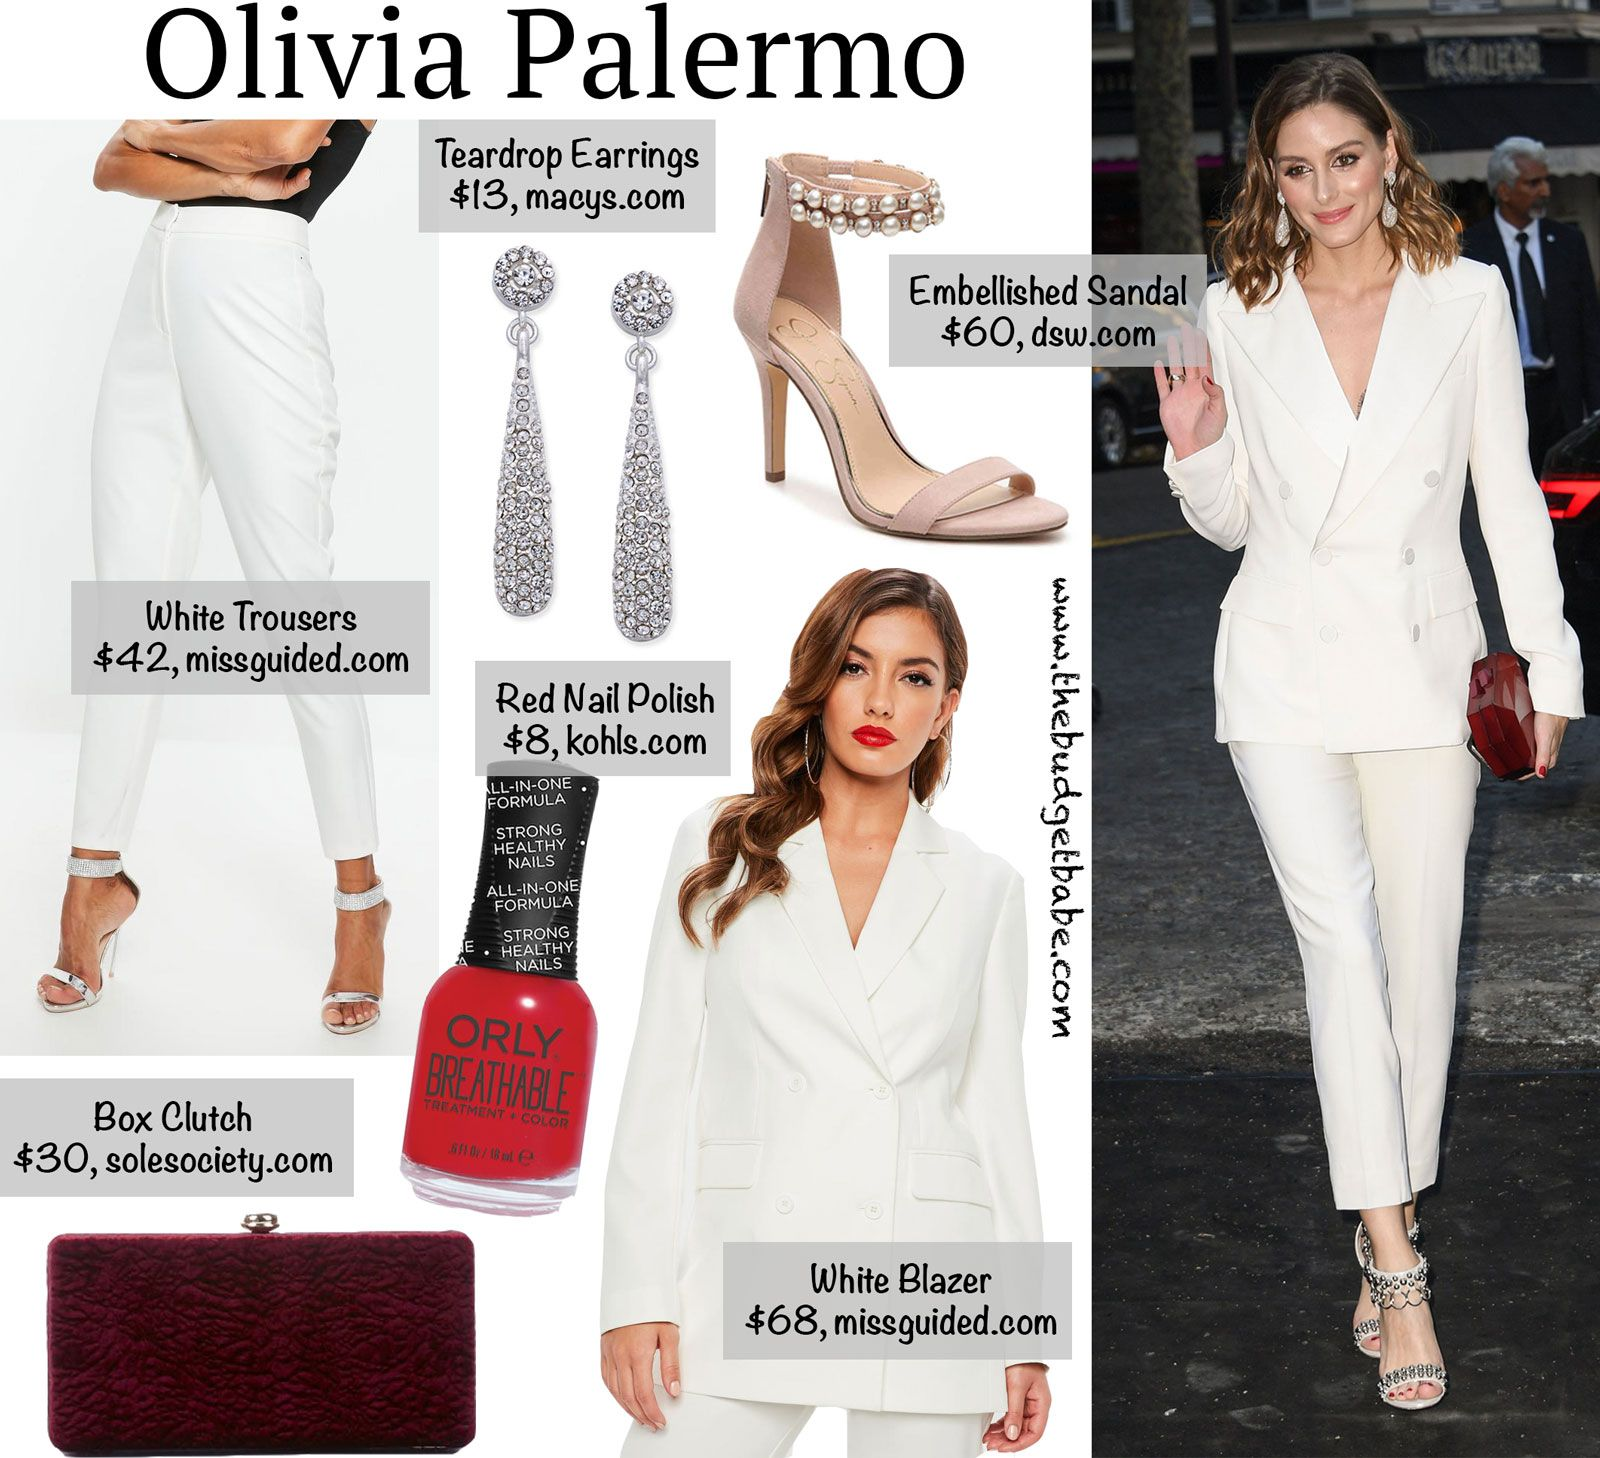 Palermo olivia get the look for less foto